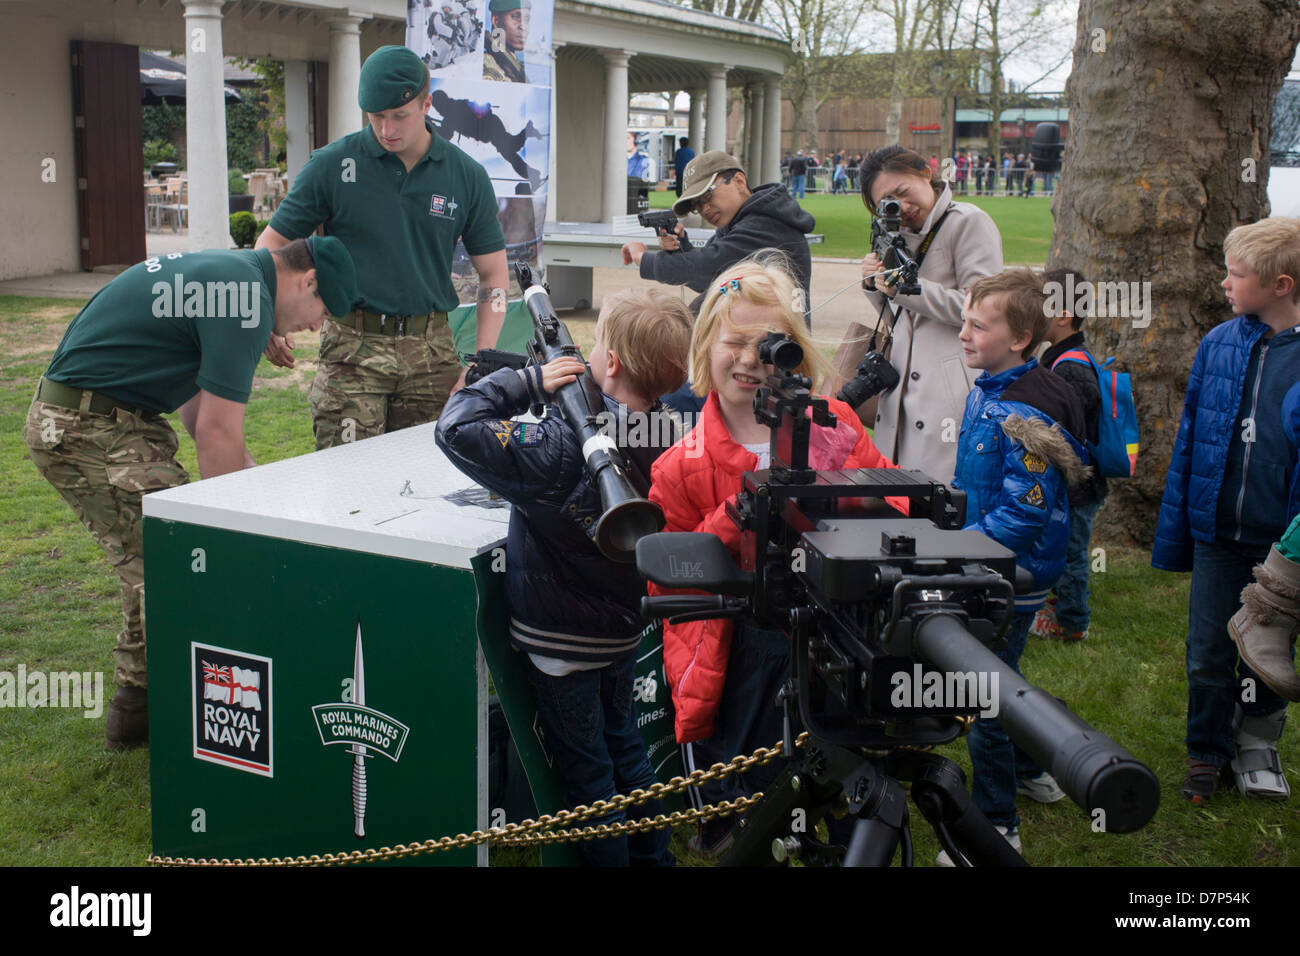 Members of Royal Marines Commandos demonstrate various weaponry to small children and young adults during a public - Stock Image